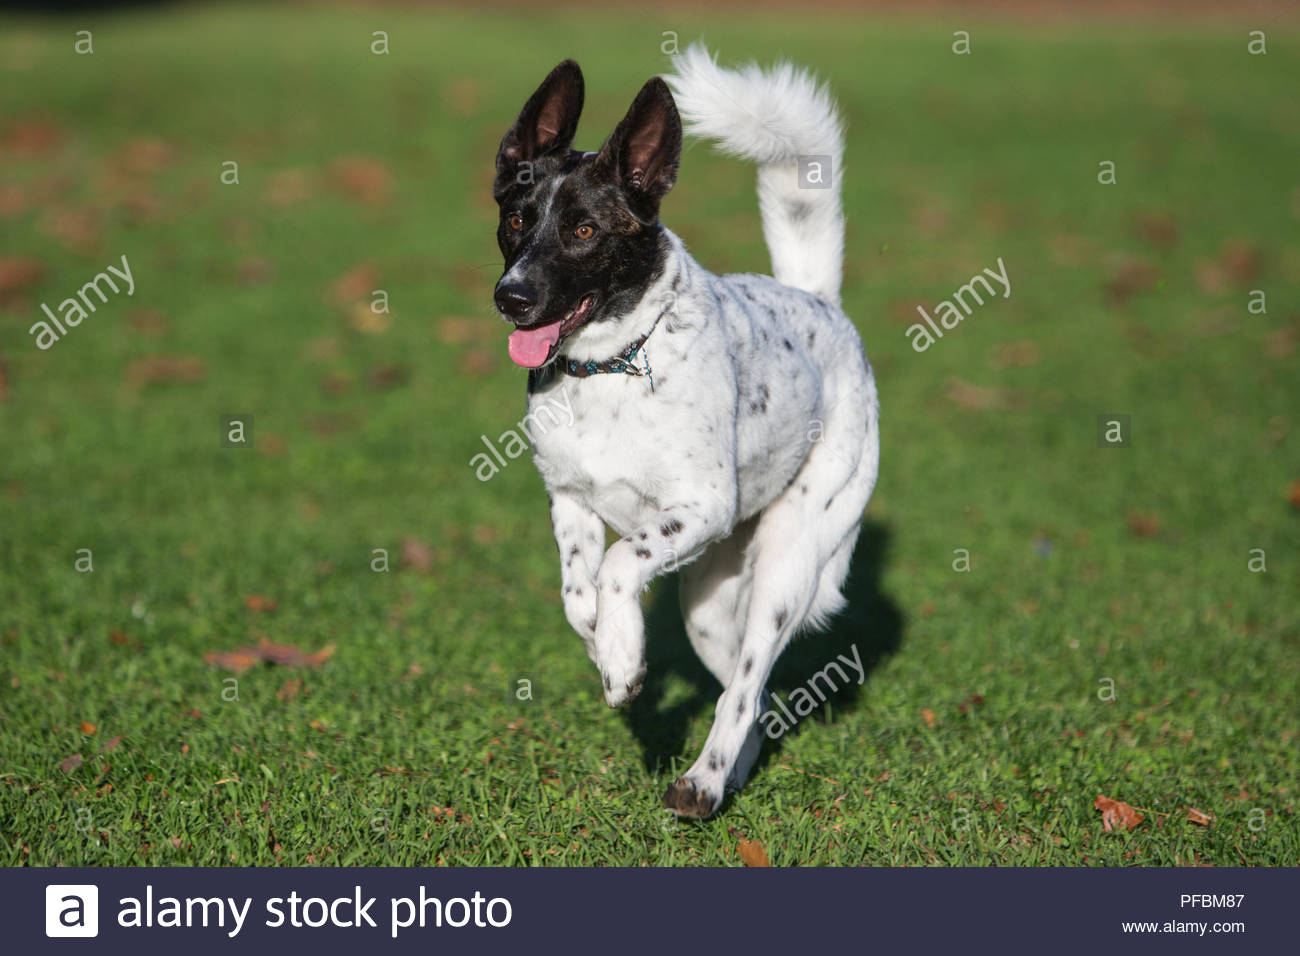 Smiling black and white dog with spots running over grass stock image